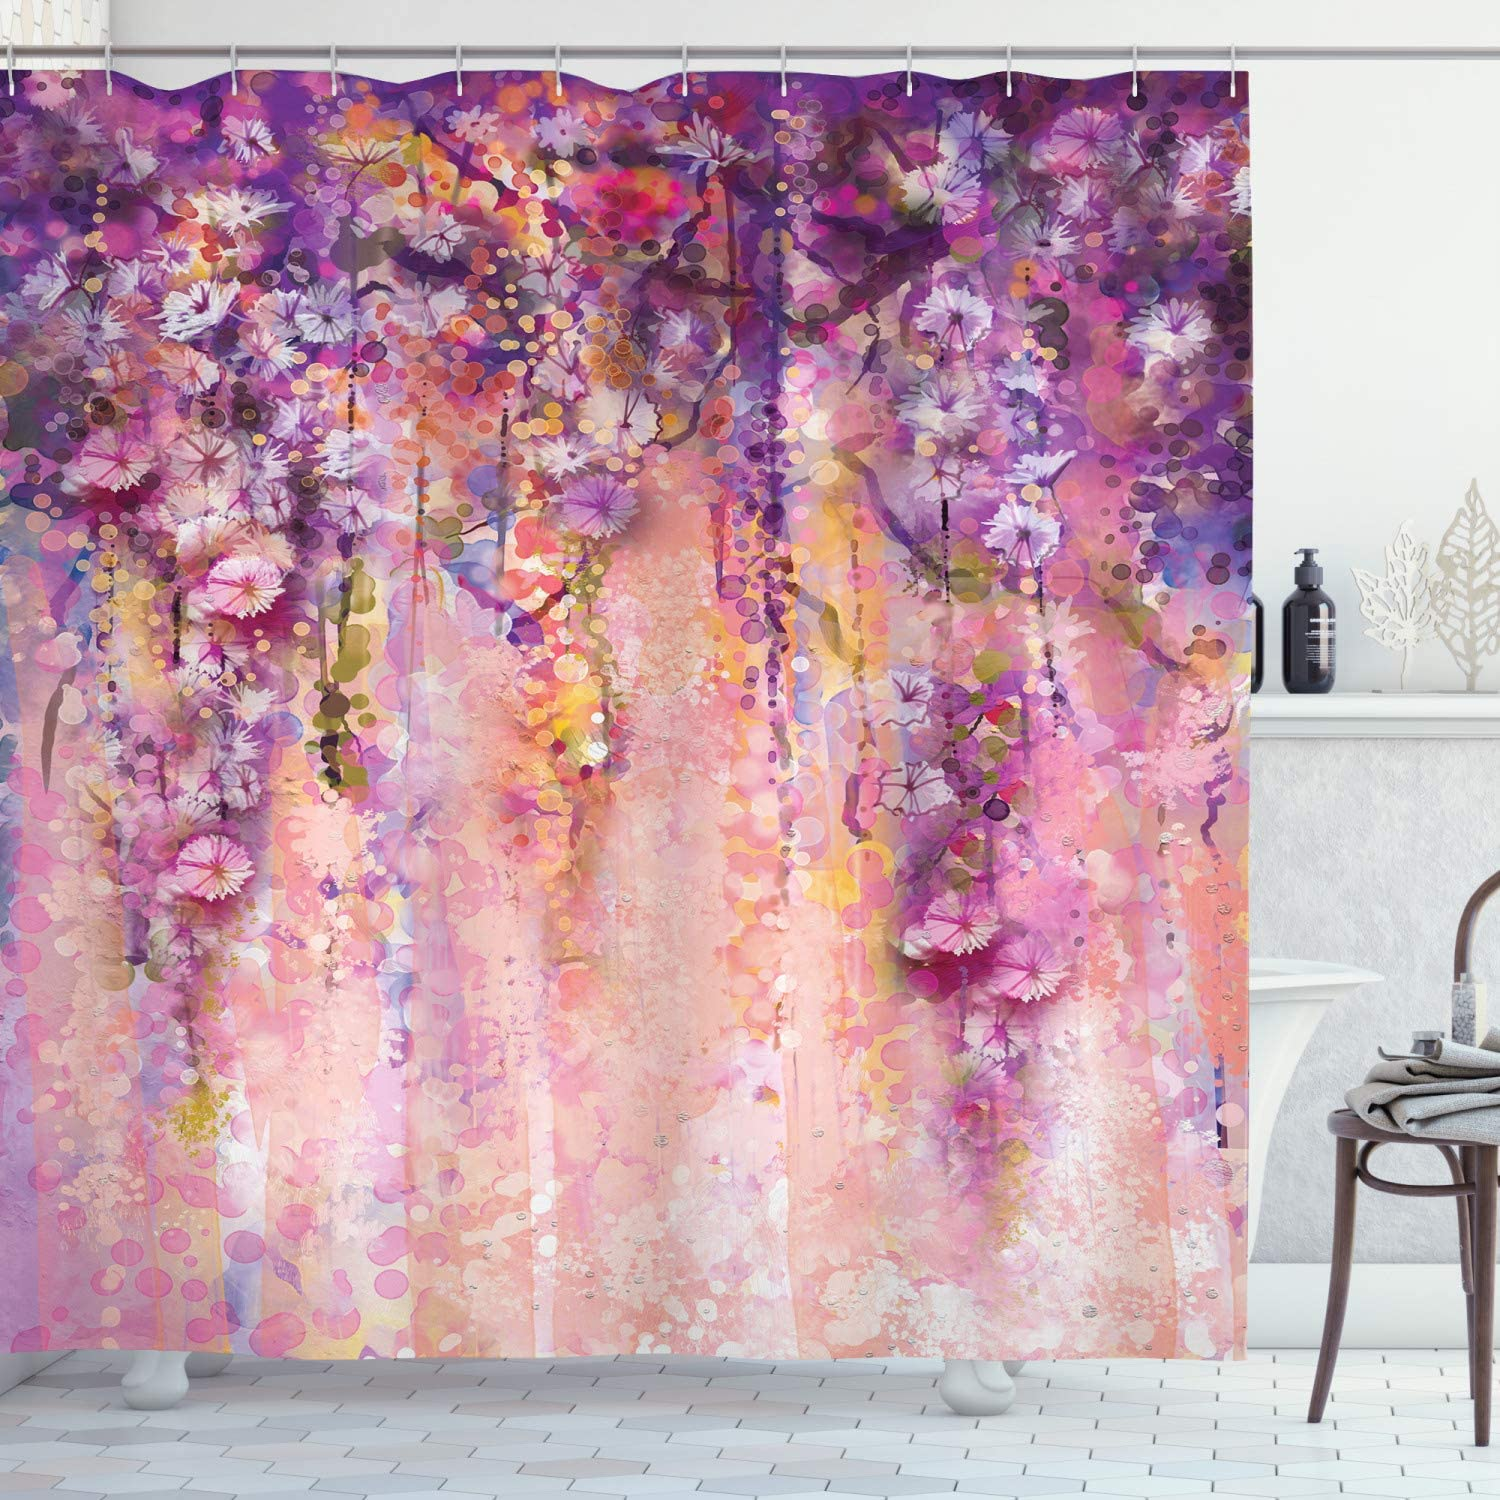 Purple Shower Curtain Violet Tree Blossoms Print for Bathroom